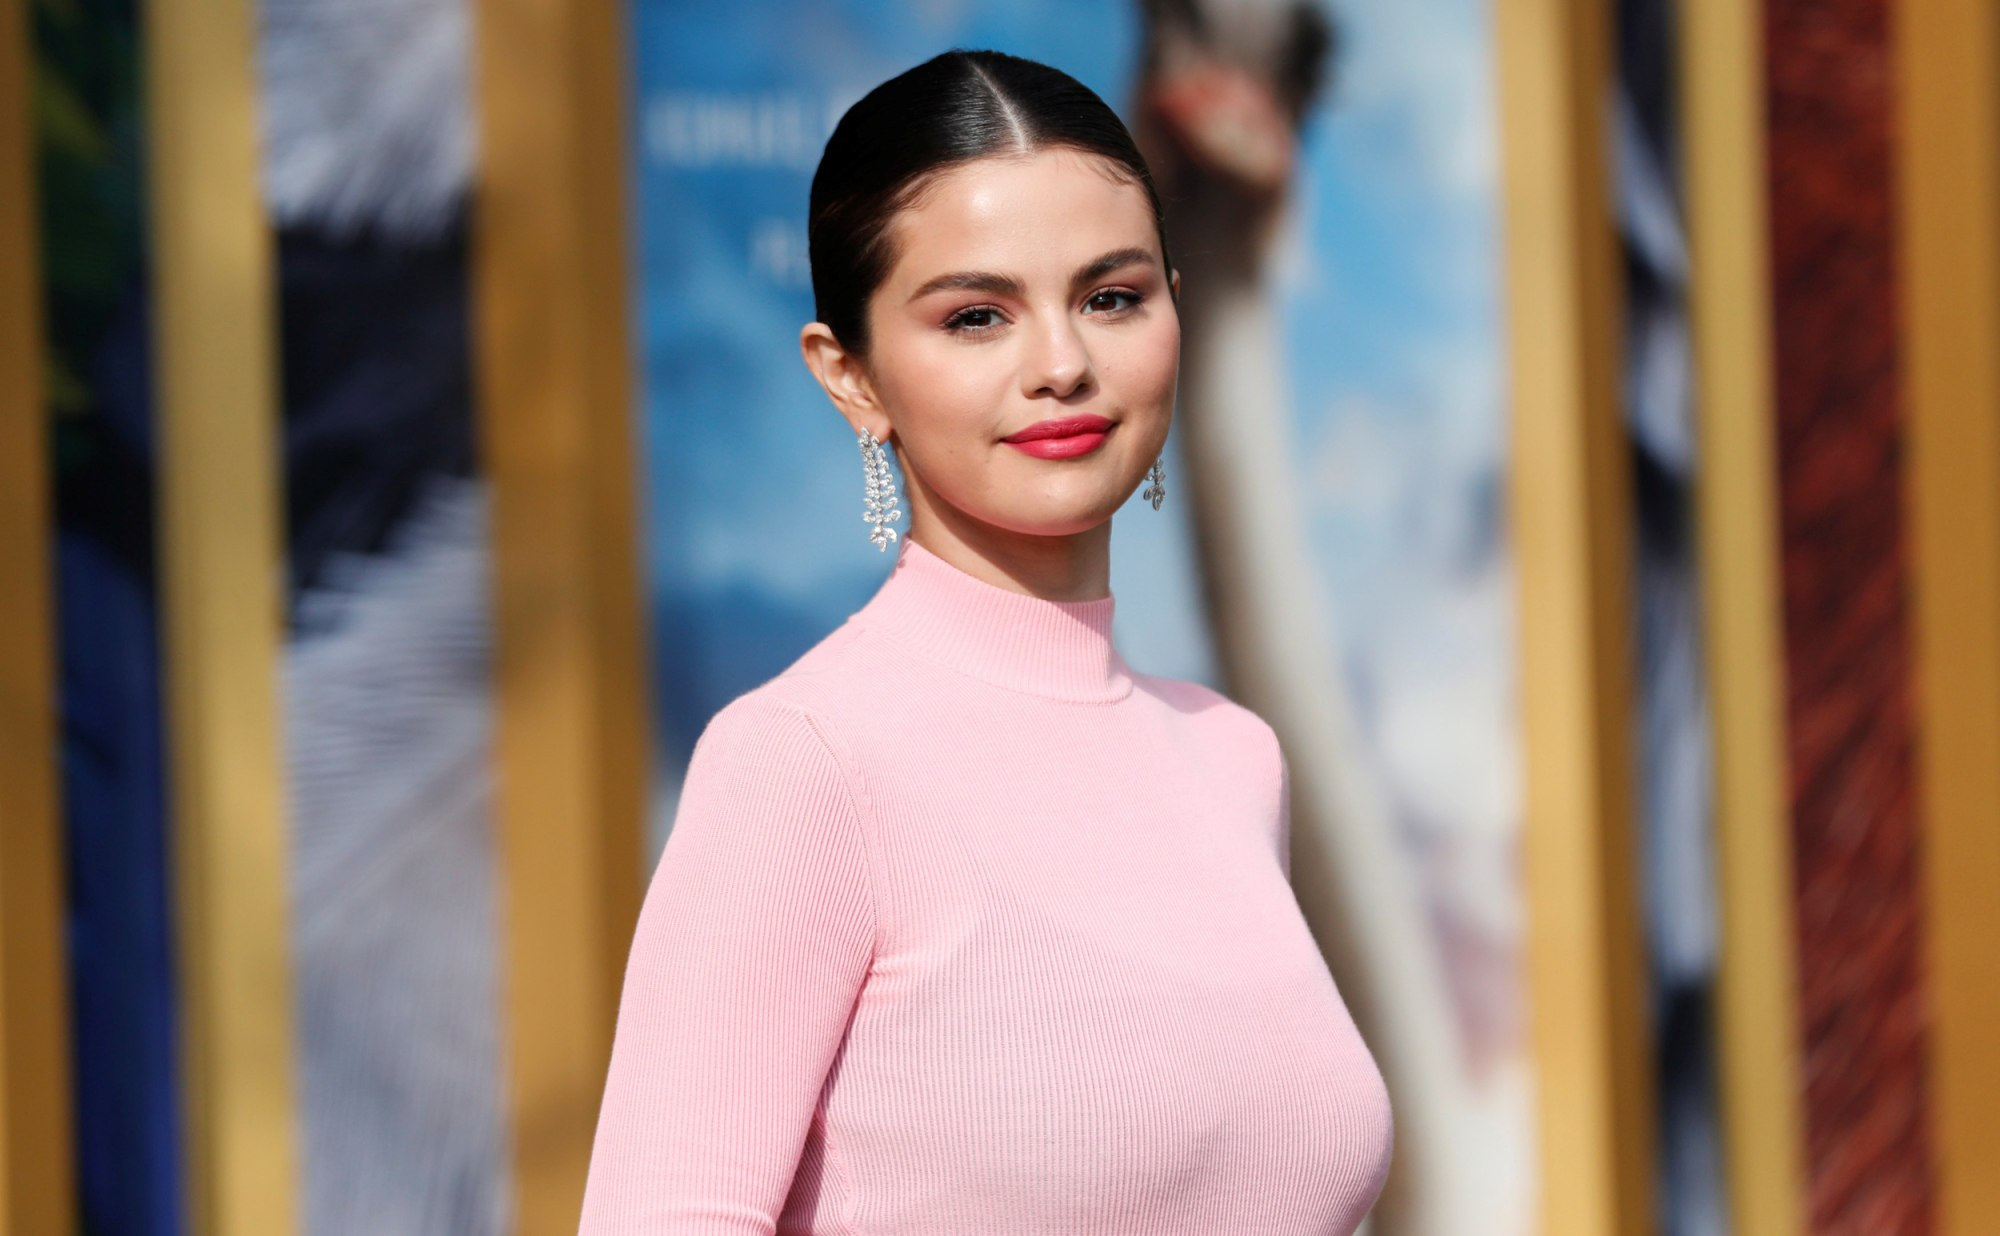 Selena Gomez says she experienced emotional abuse in Justin Bieber relationship